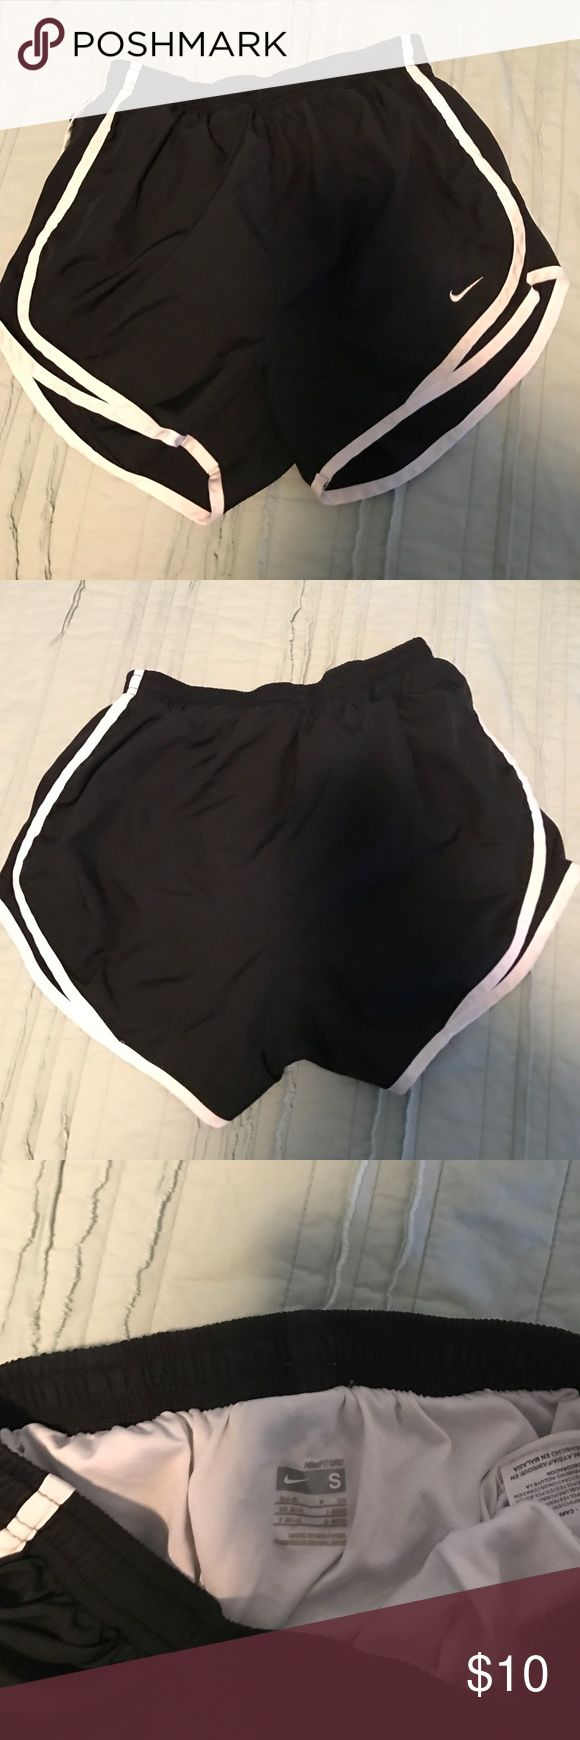 Nike shorts Black Nike workout shorts size S Nike Shorts